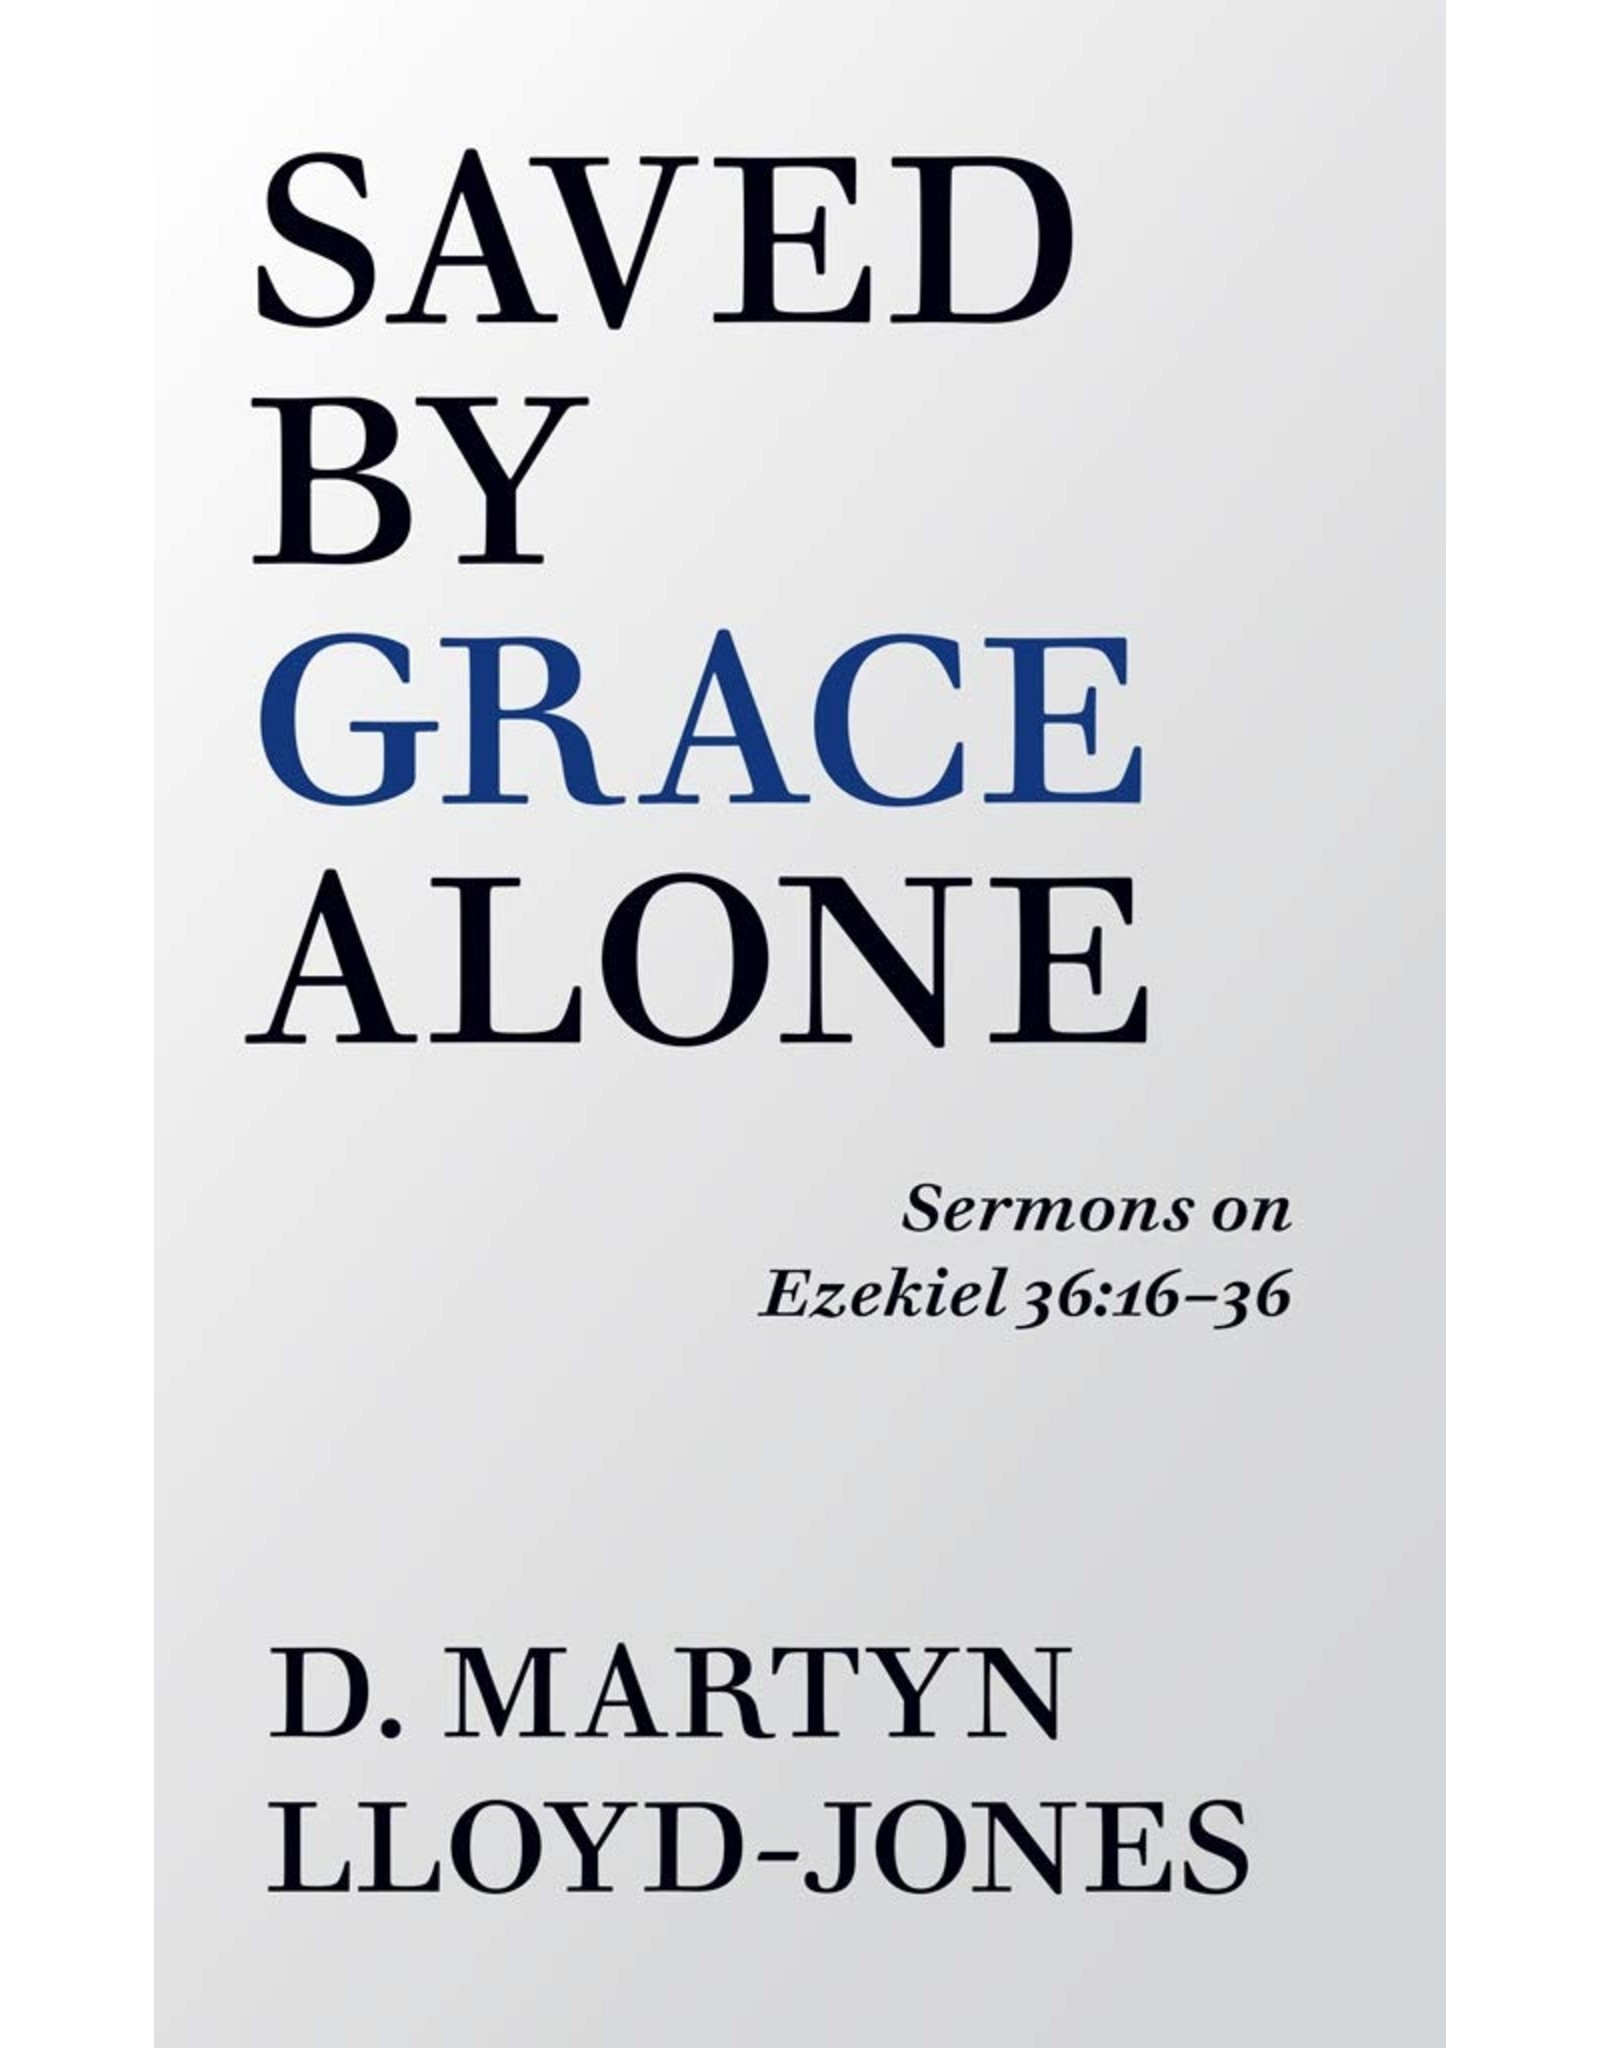 Banner of Truth Saved By Grace Alone - Sermons on Ezekiel 36:16-36